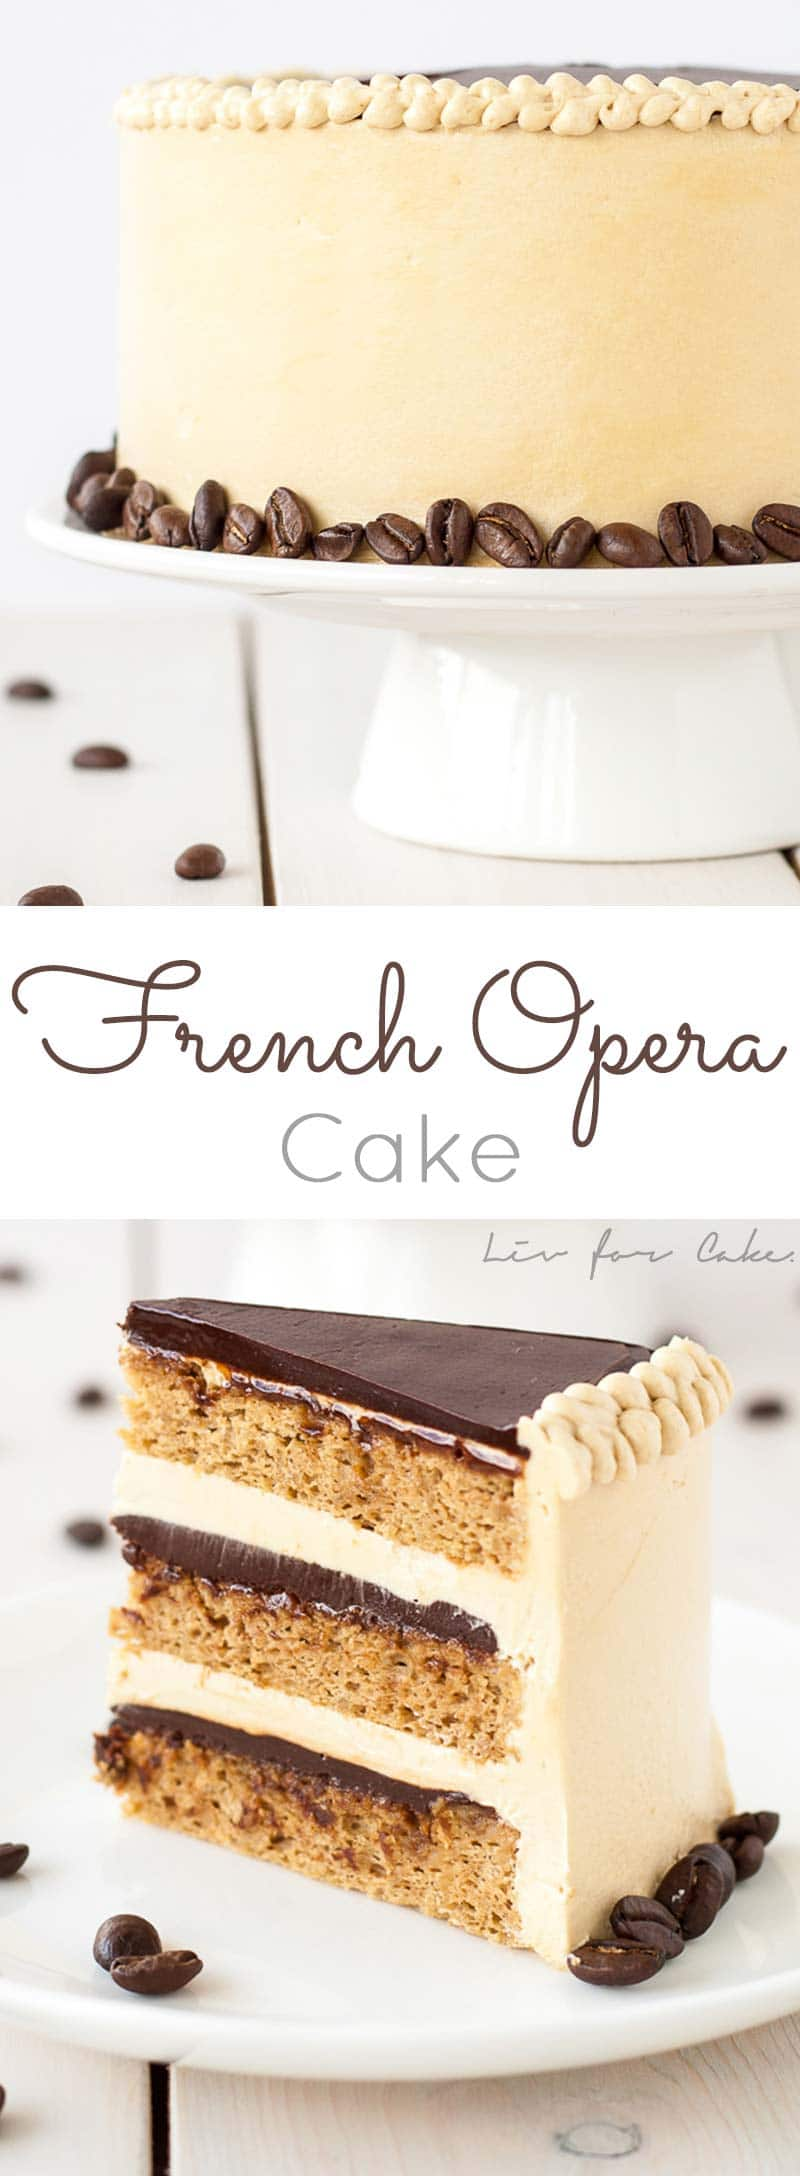 French Opera Cake! A modern take on a French classic, this decadent Opera cake is rich, chocolatey, and packed with espresso flavour. | livforcake.com